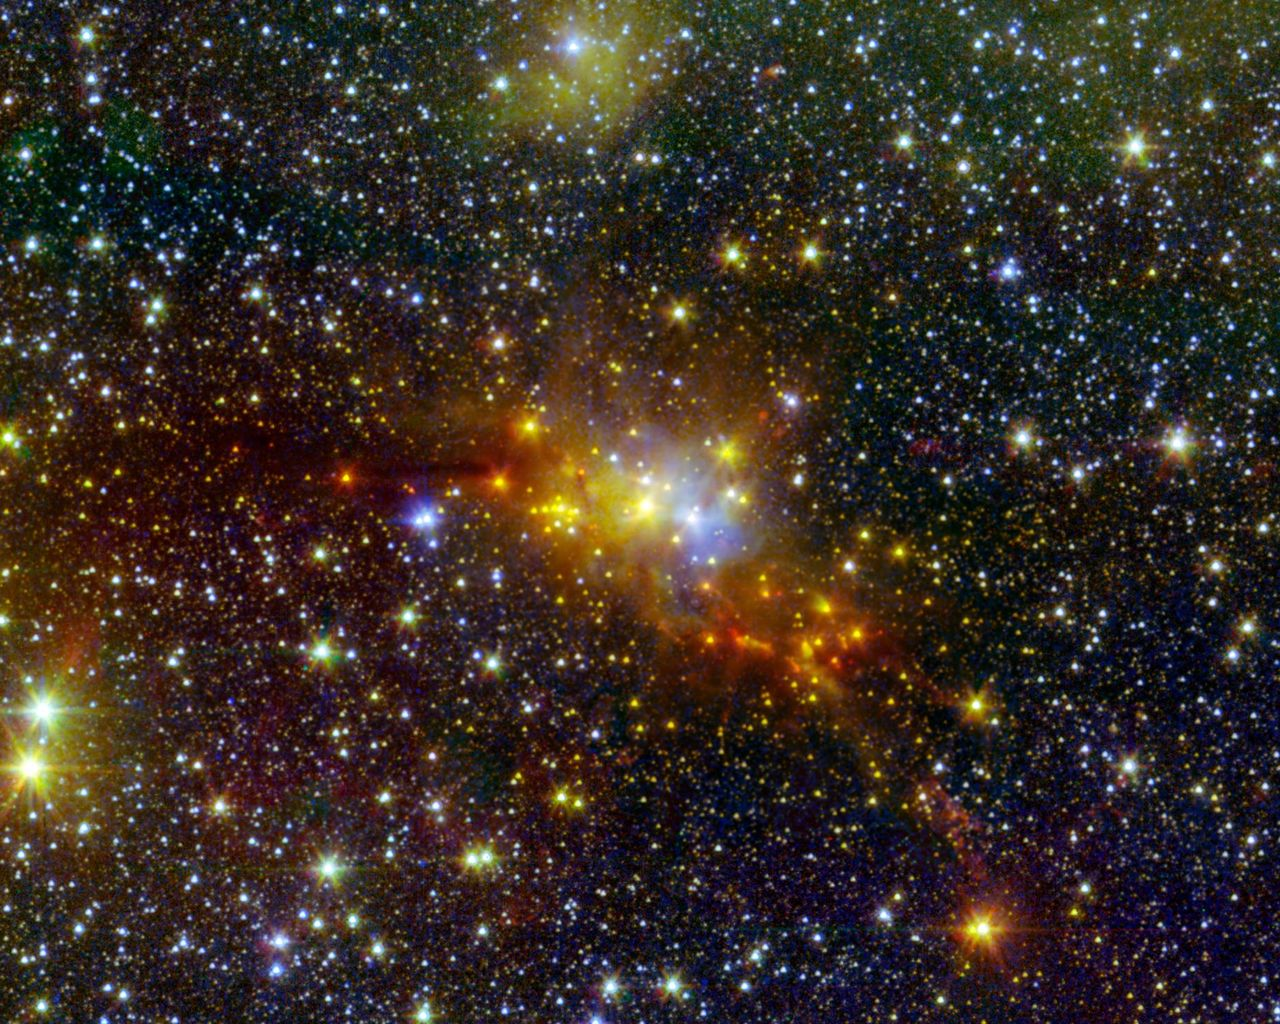 Space Images | The 'Serpent' Star-Forming Cloud Spawns Stars